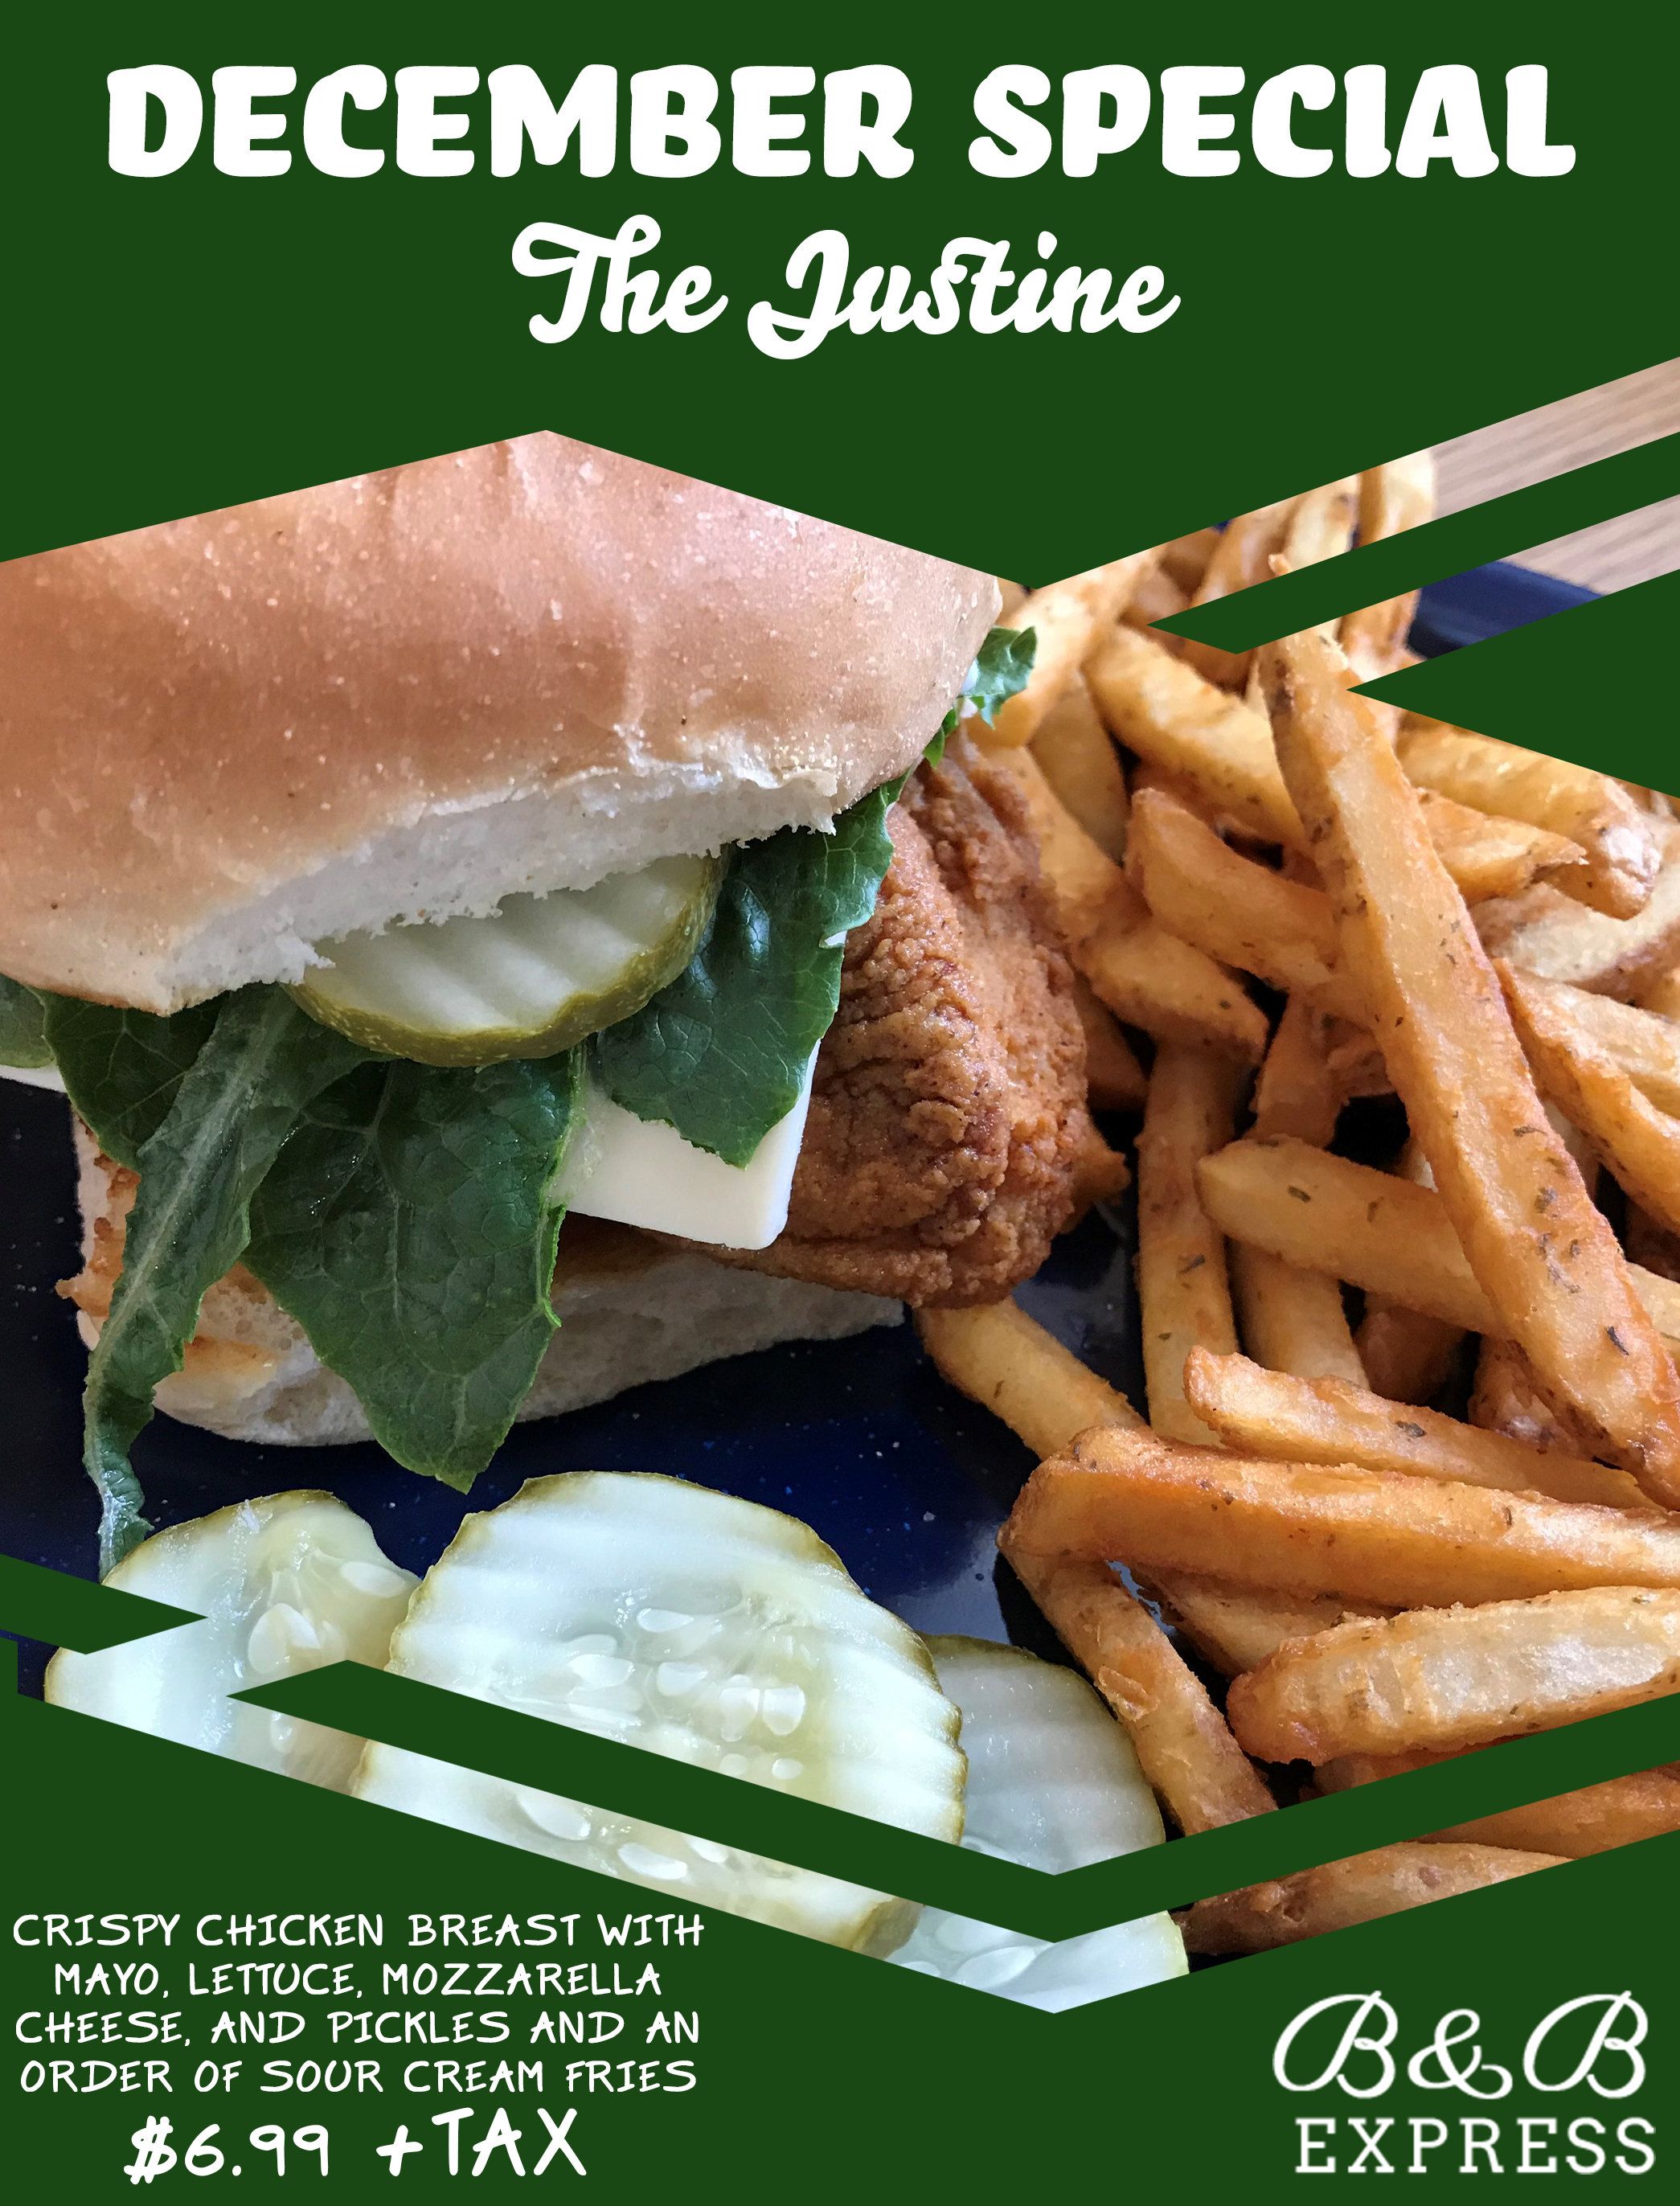 December Special - The Justine. Crispy Chicken Breast with Mayo, Lettuce, Mozzarella Cheese, and Pickles and an order of Sour Cream Fries - $6.99 + Tax. B&B Express.